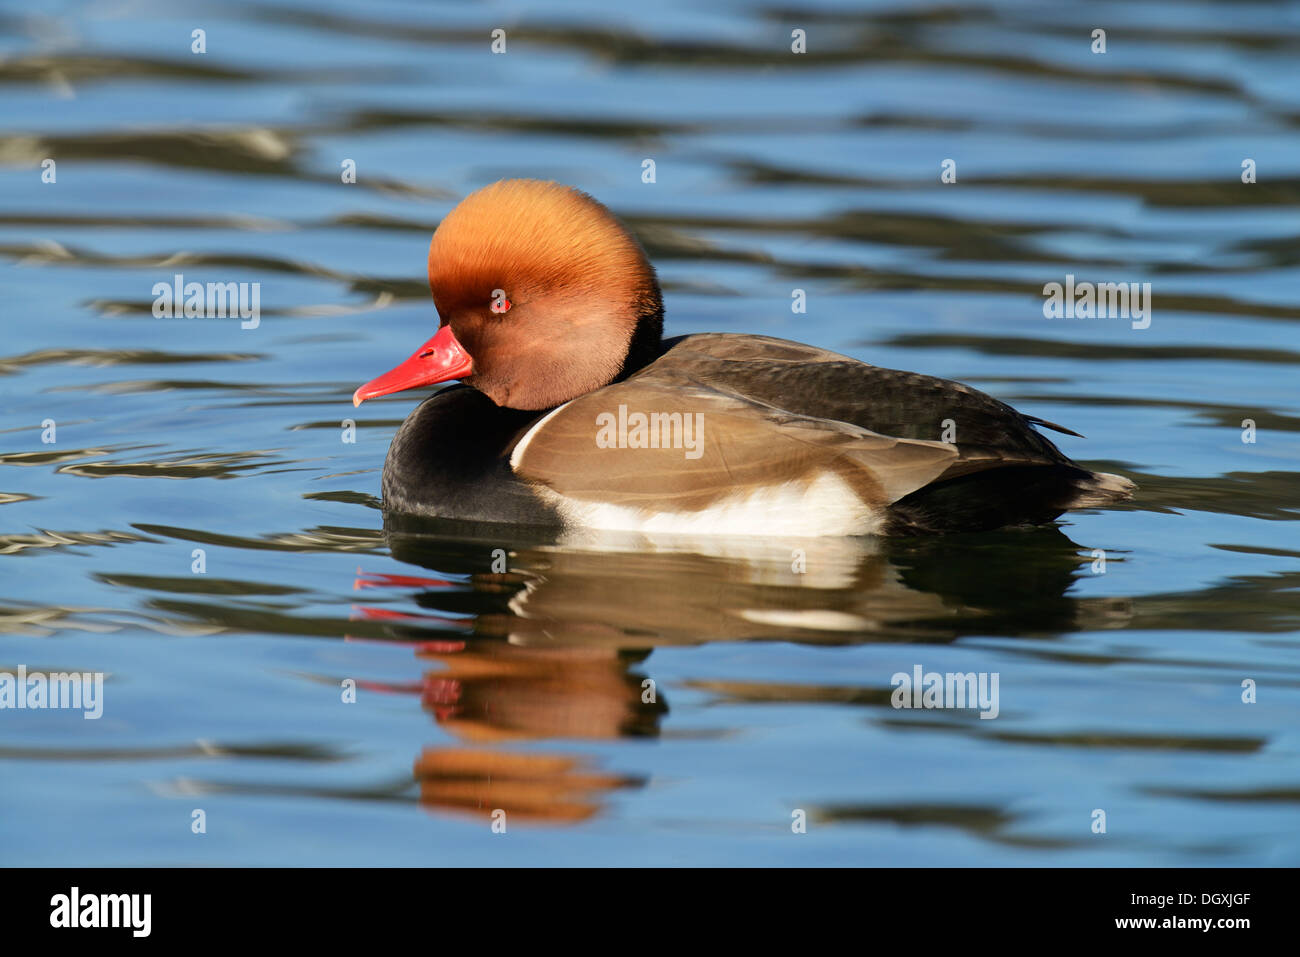 Red-crested Pochard (Netta rufina), drake in breeding plumage, swimming, Luzern, Luzern, Canton of Lucerne, Switzerland - Stock Image